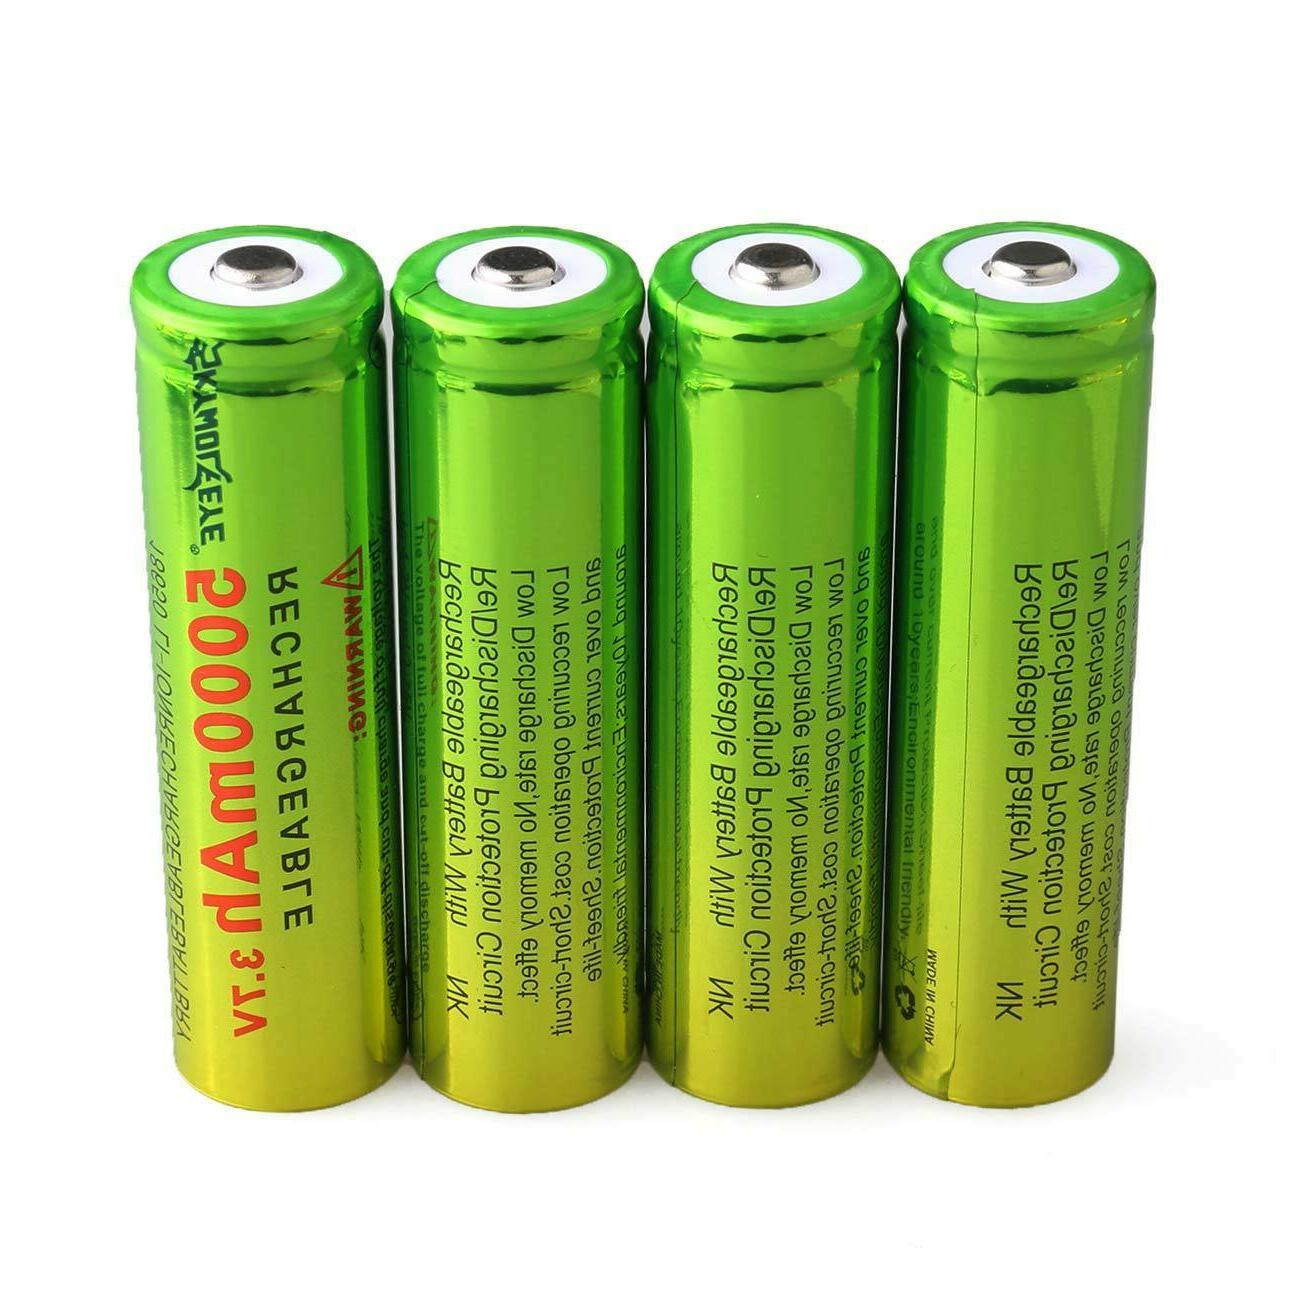 Lot 3.7V 18650 Battery 5000mAh Li-ion Rechargeable Batteries USA